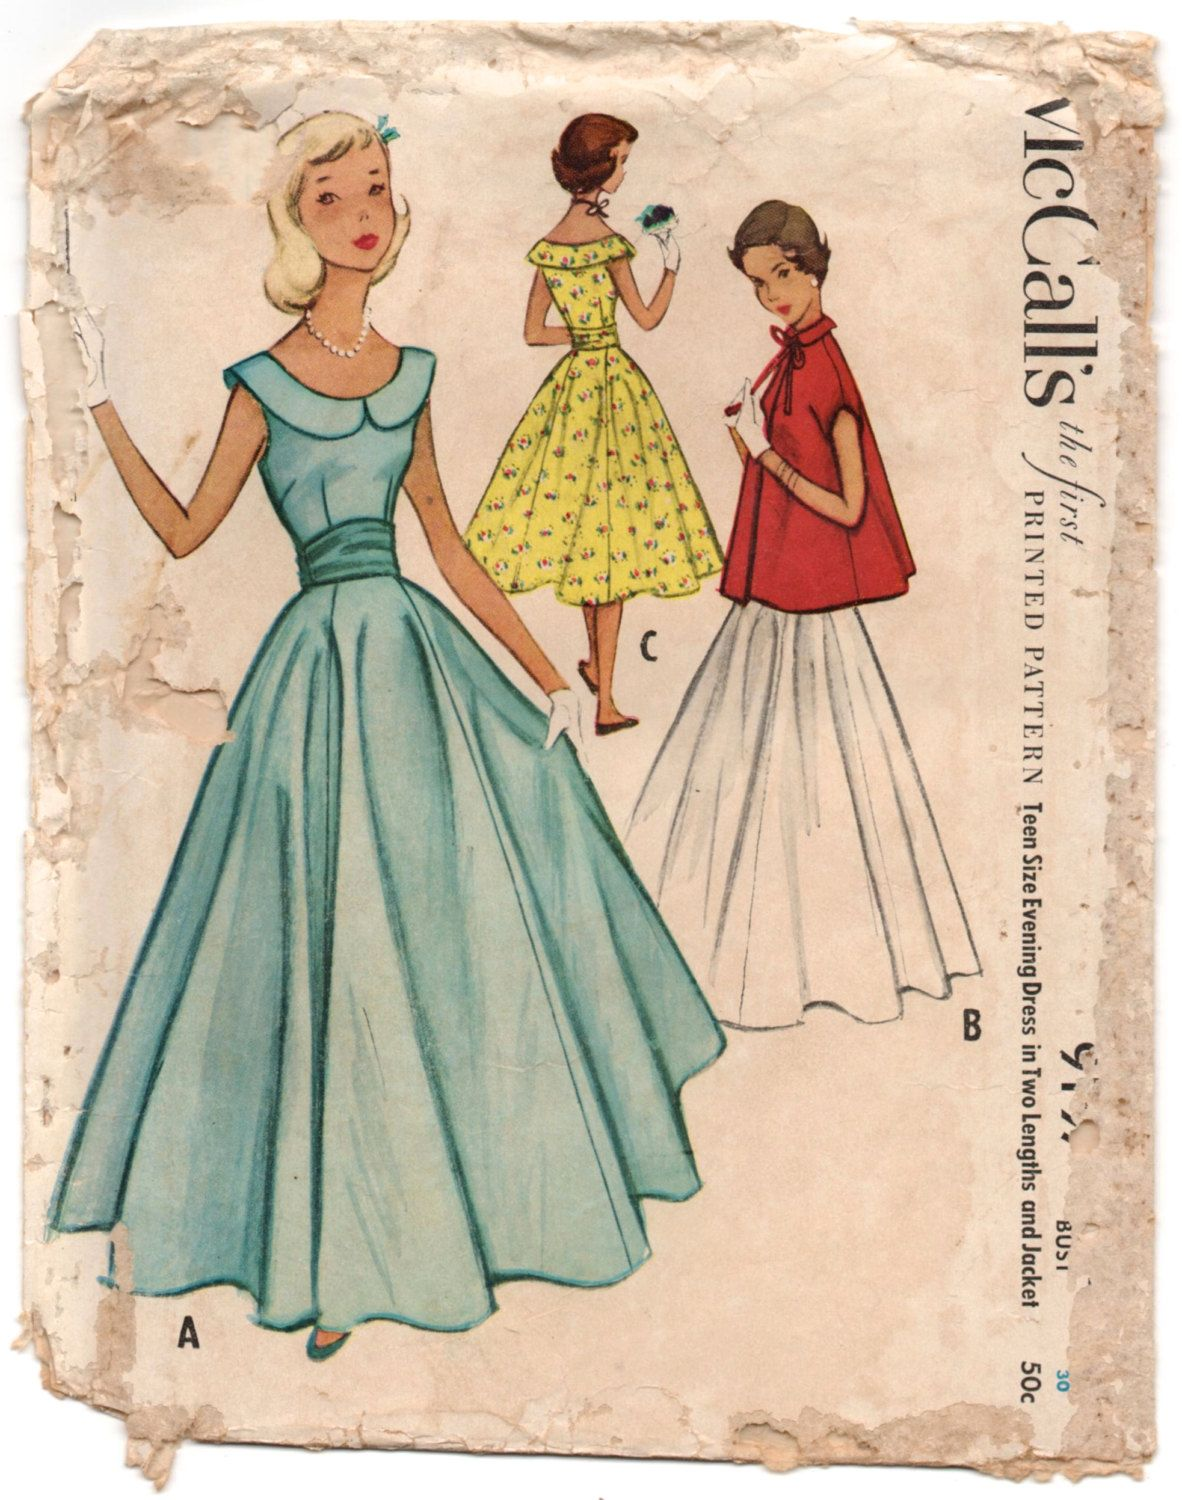 "1950'sMcCall's Prom or Homecoming Floor or Tea length Dress Pattern with scoop neck and jacket - Bust 30"" - No. 9197 by backroomfinds on Etsy"